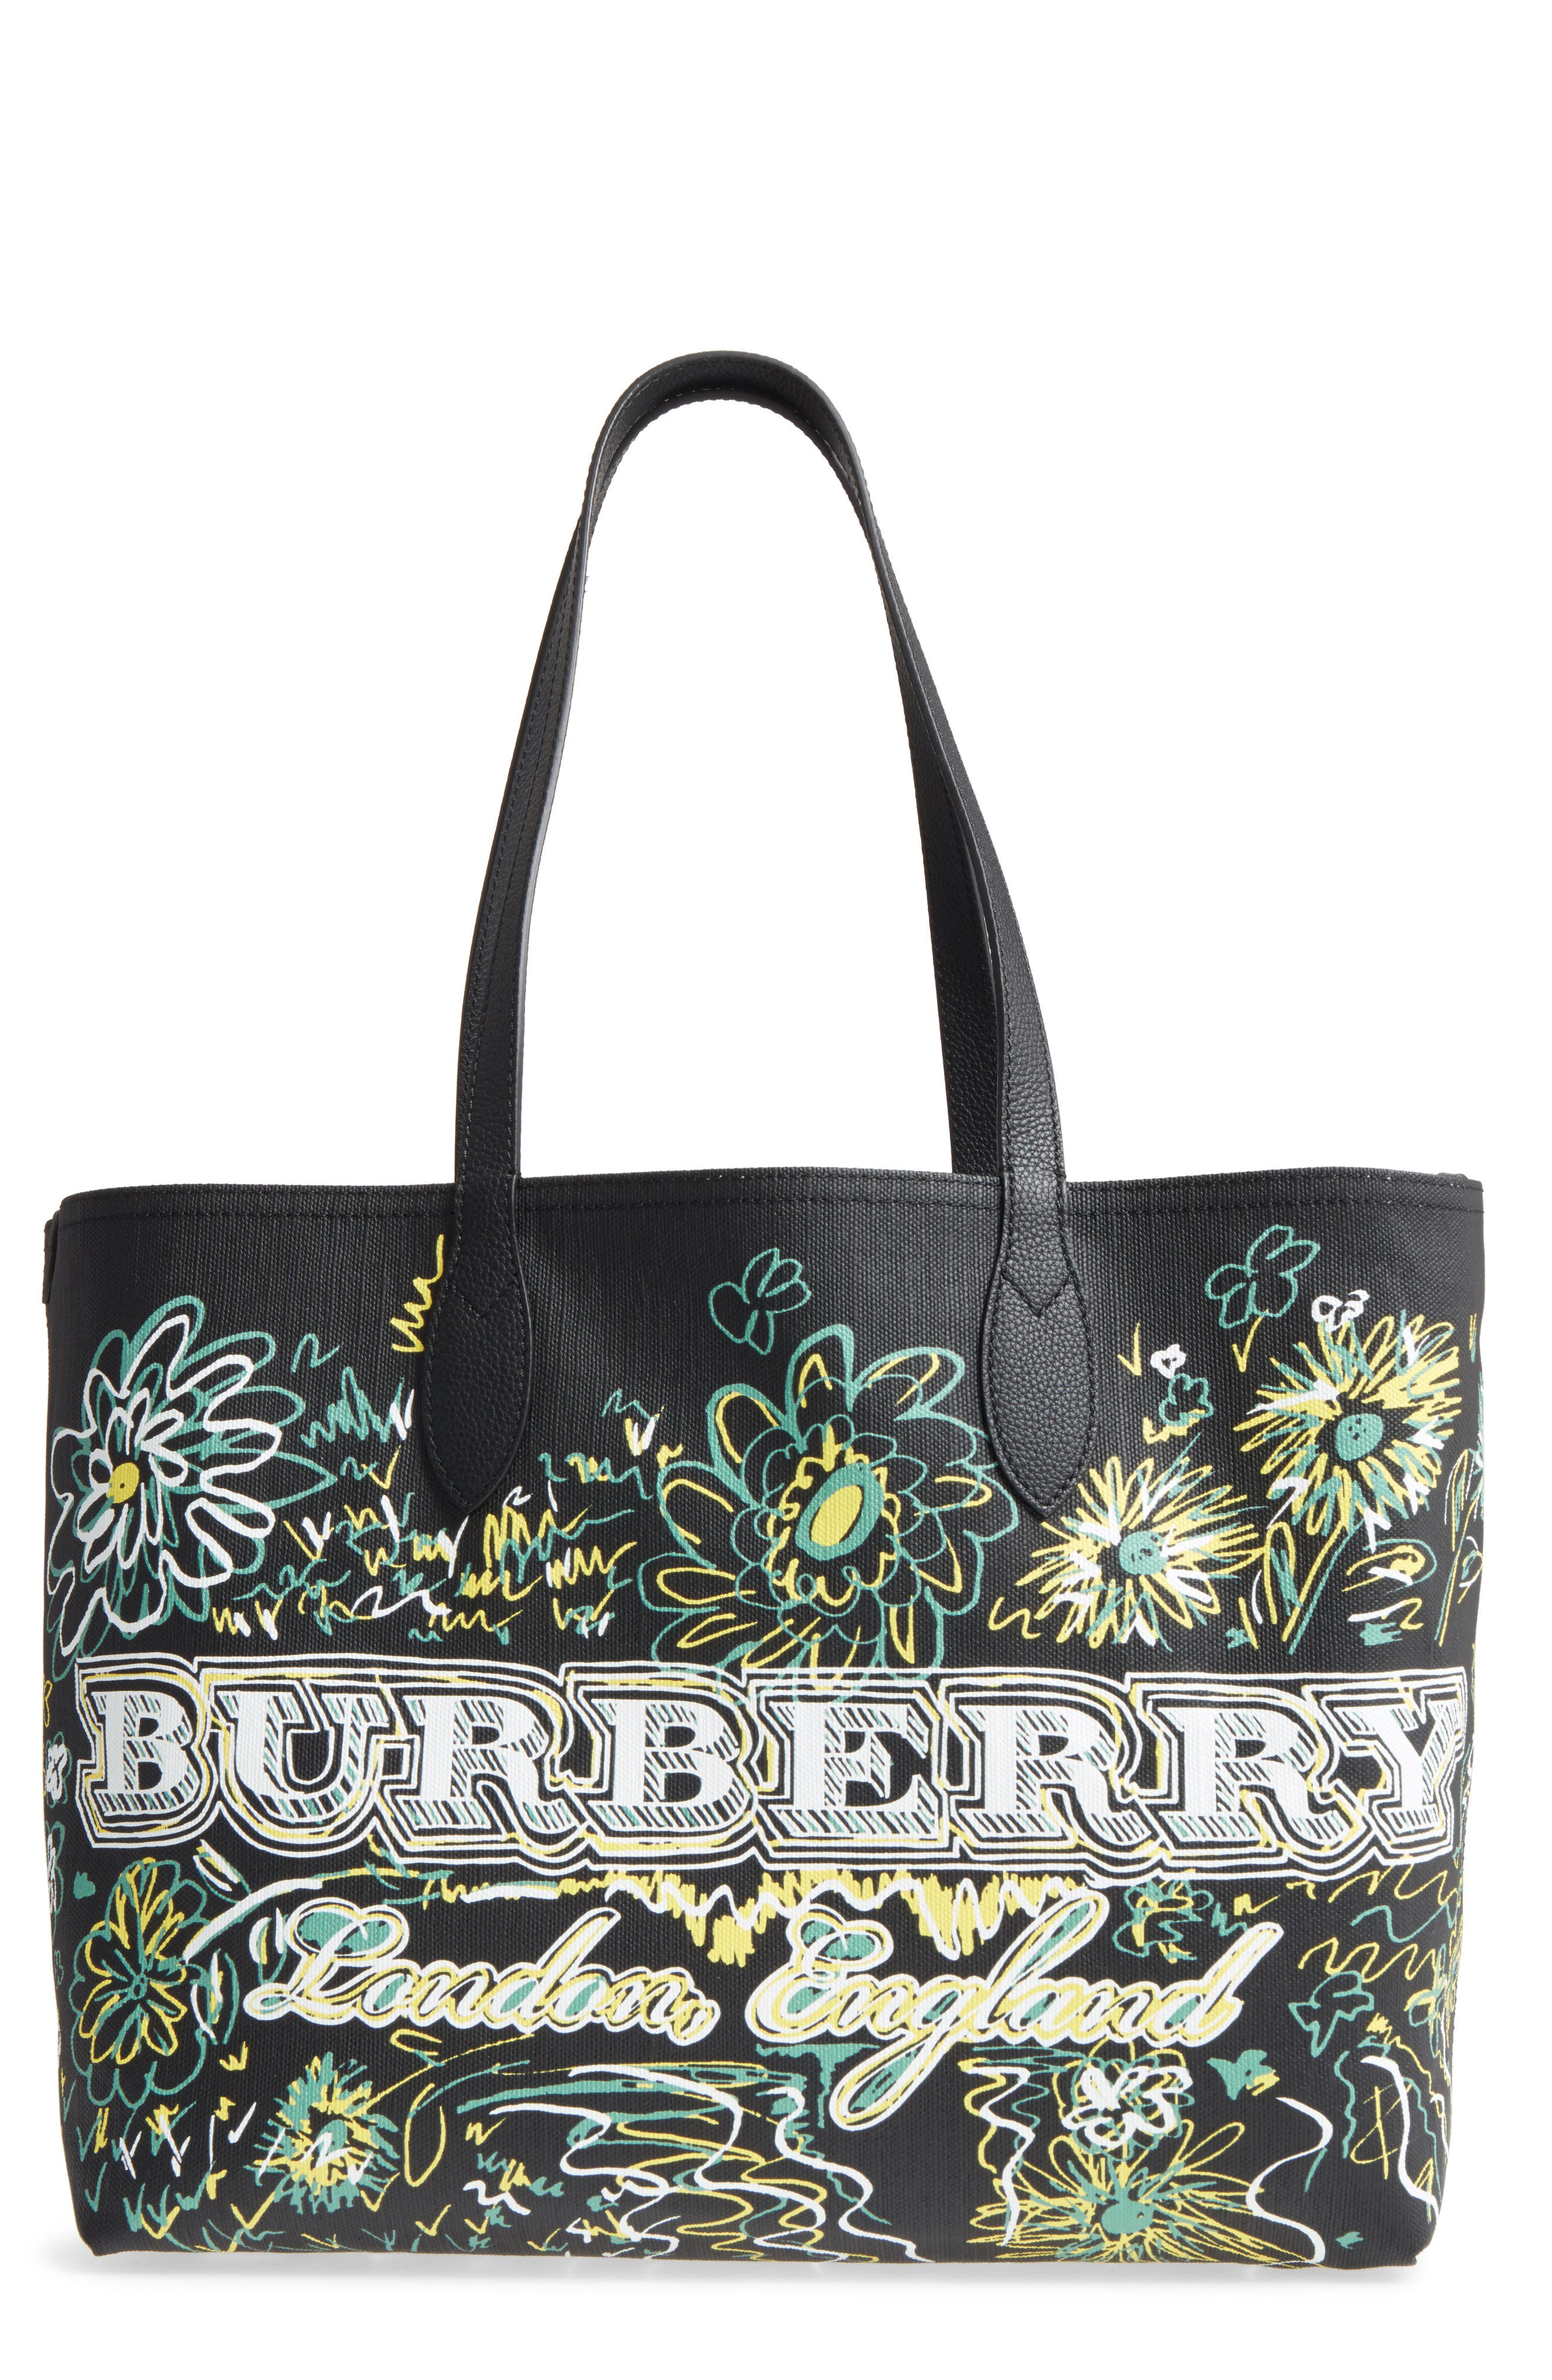 Burberry Doodletote/Check Reversible Canvas Tote